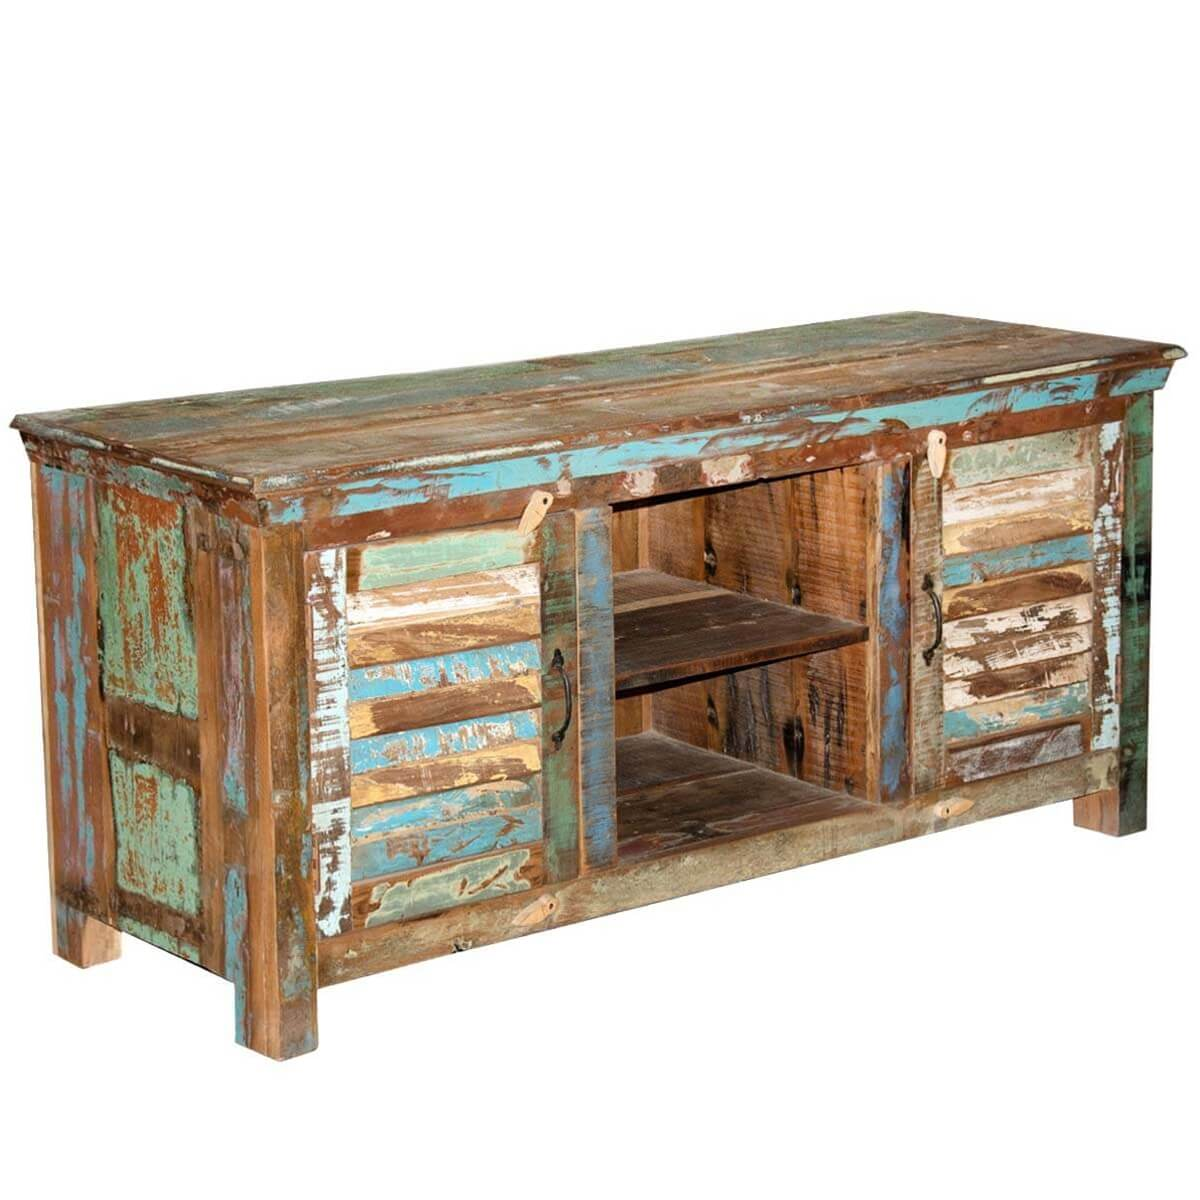 Superb img of  Appalachian Rustic Shutter Doors Reclaimed Wood TV Stand Media Console with #A1762A color and 1200x1200 pixels